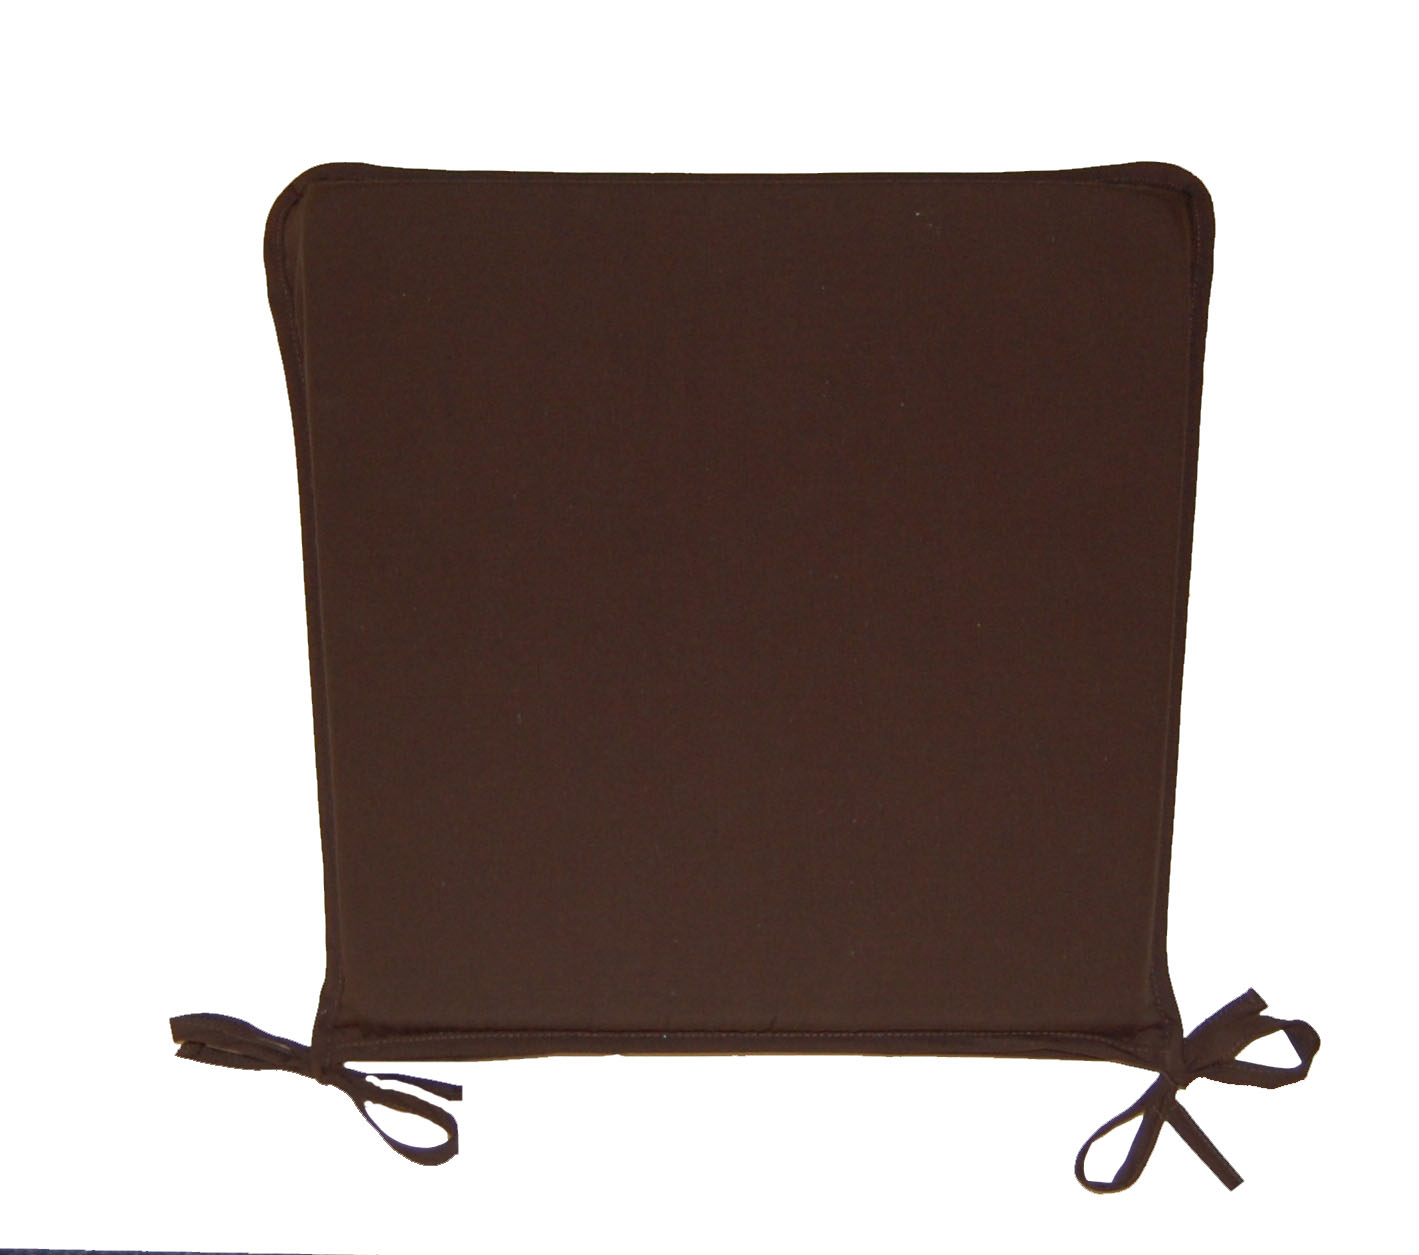 Seat Cushions For Dining Room Chairs Kitchen Chair Seat Pad Cushions Garden Furniture Dining